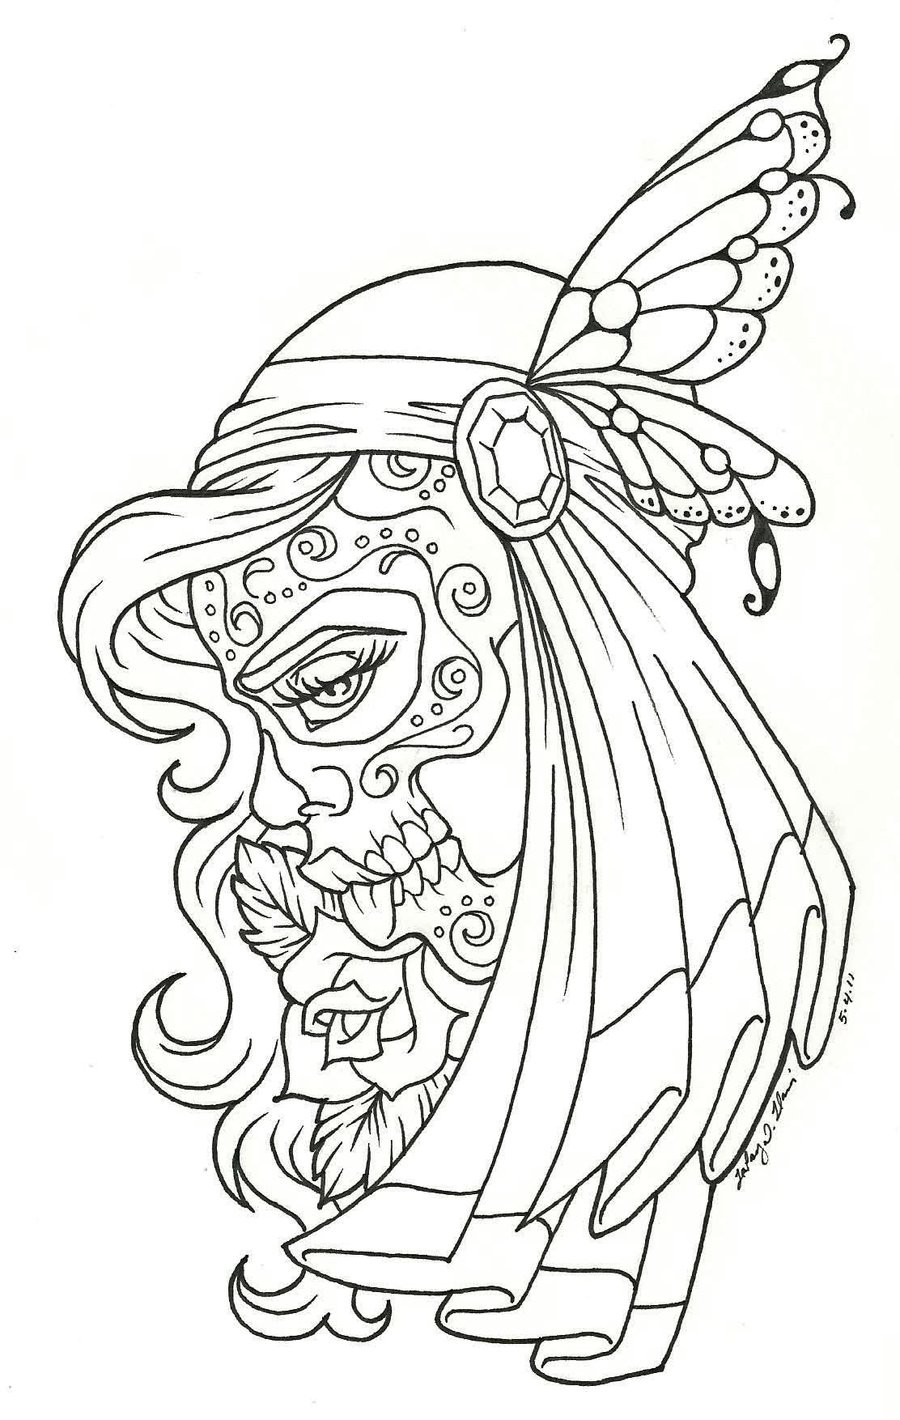 Coloring Pages Images : Free printable day of the dead coloring pages best